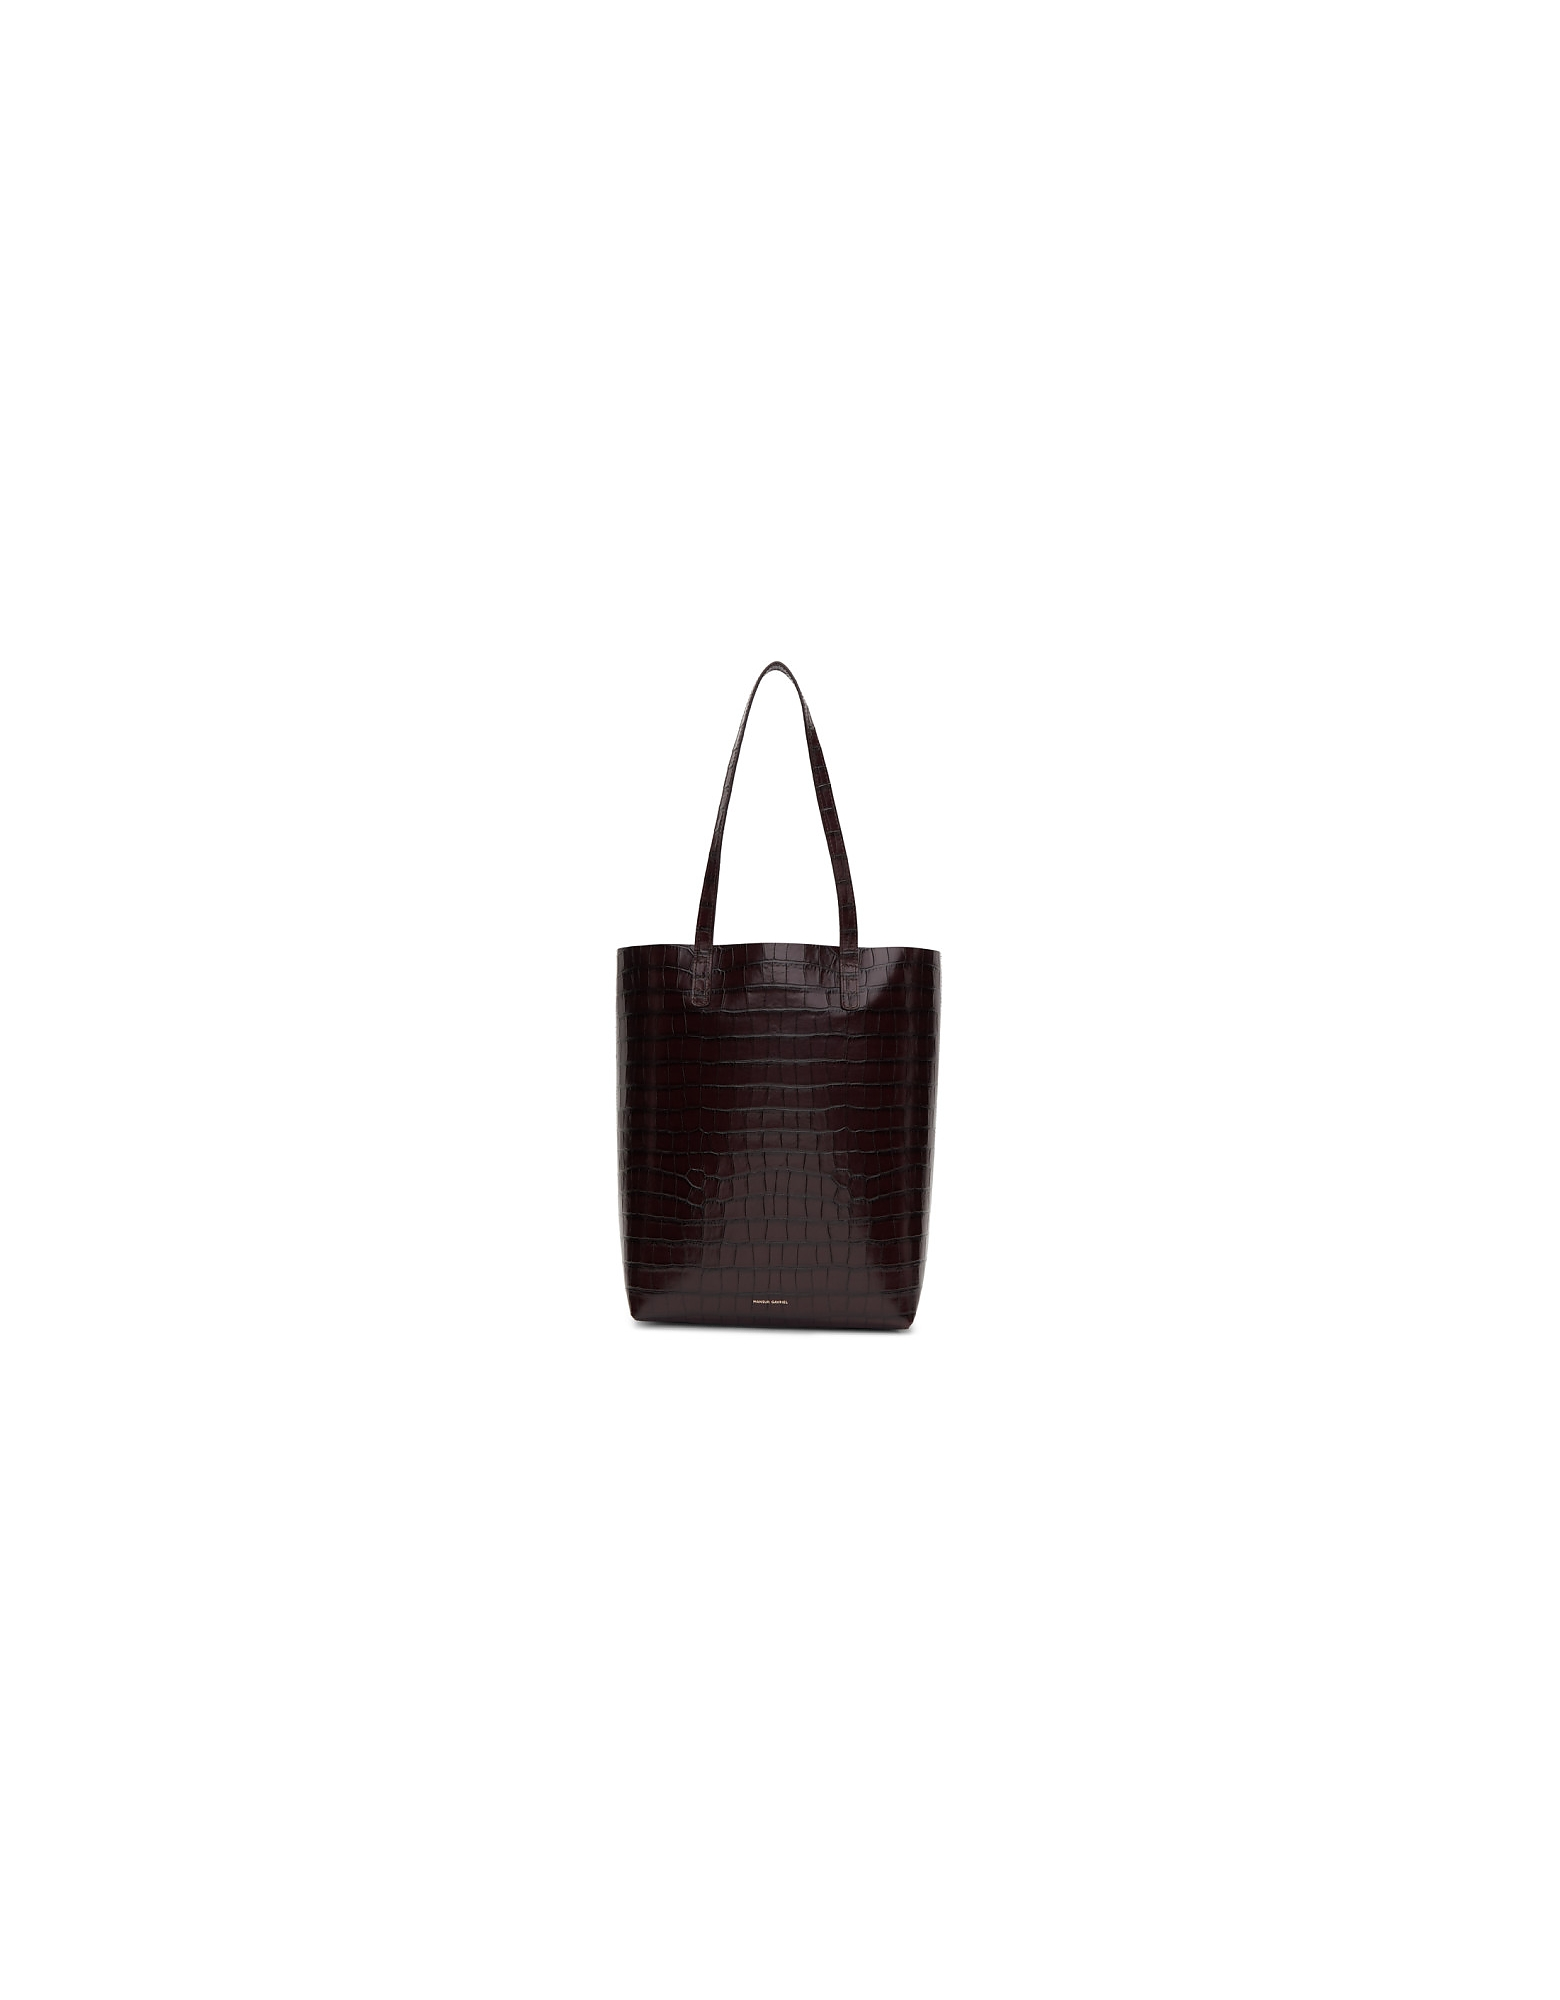 Mansur Gavriel Designer Handbags, Brown Croc Everyday Tote